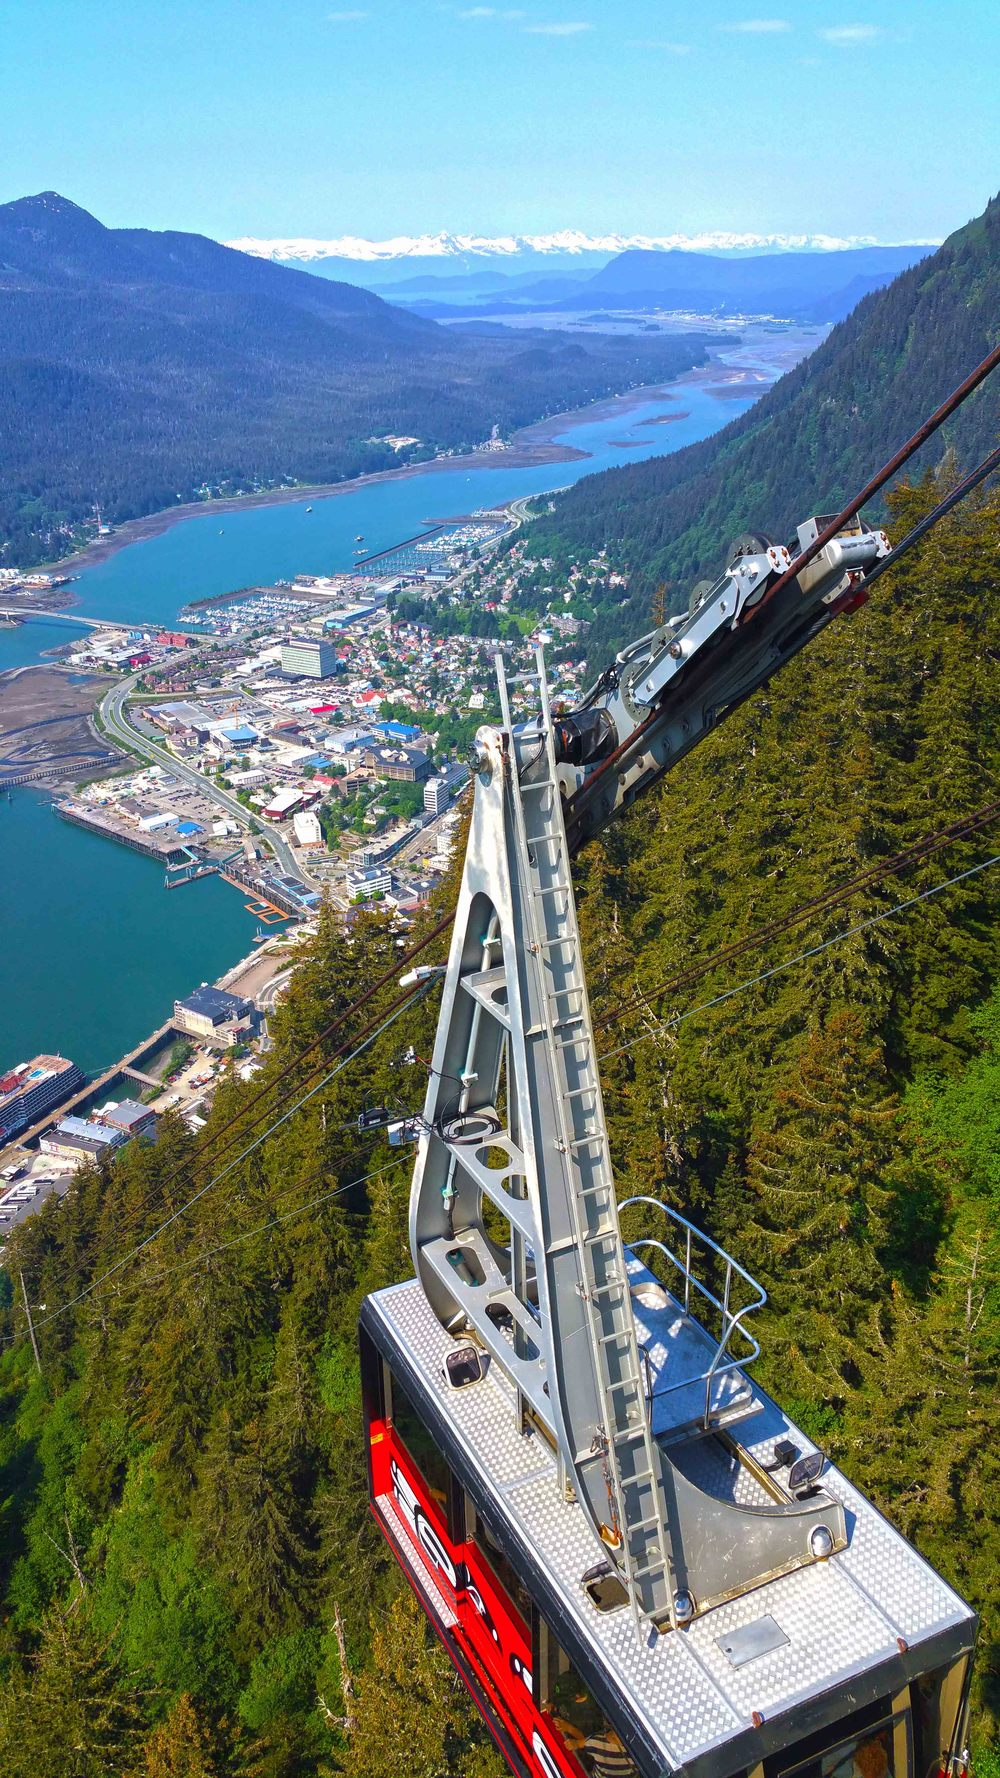 The beautiful city of Juneau Alaska as seen from Mount Roberts Tramway © Joanne DiBona